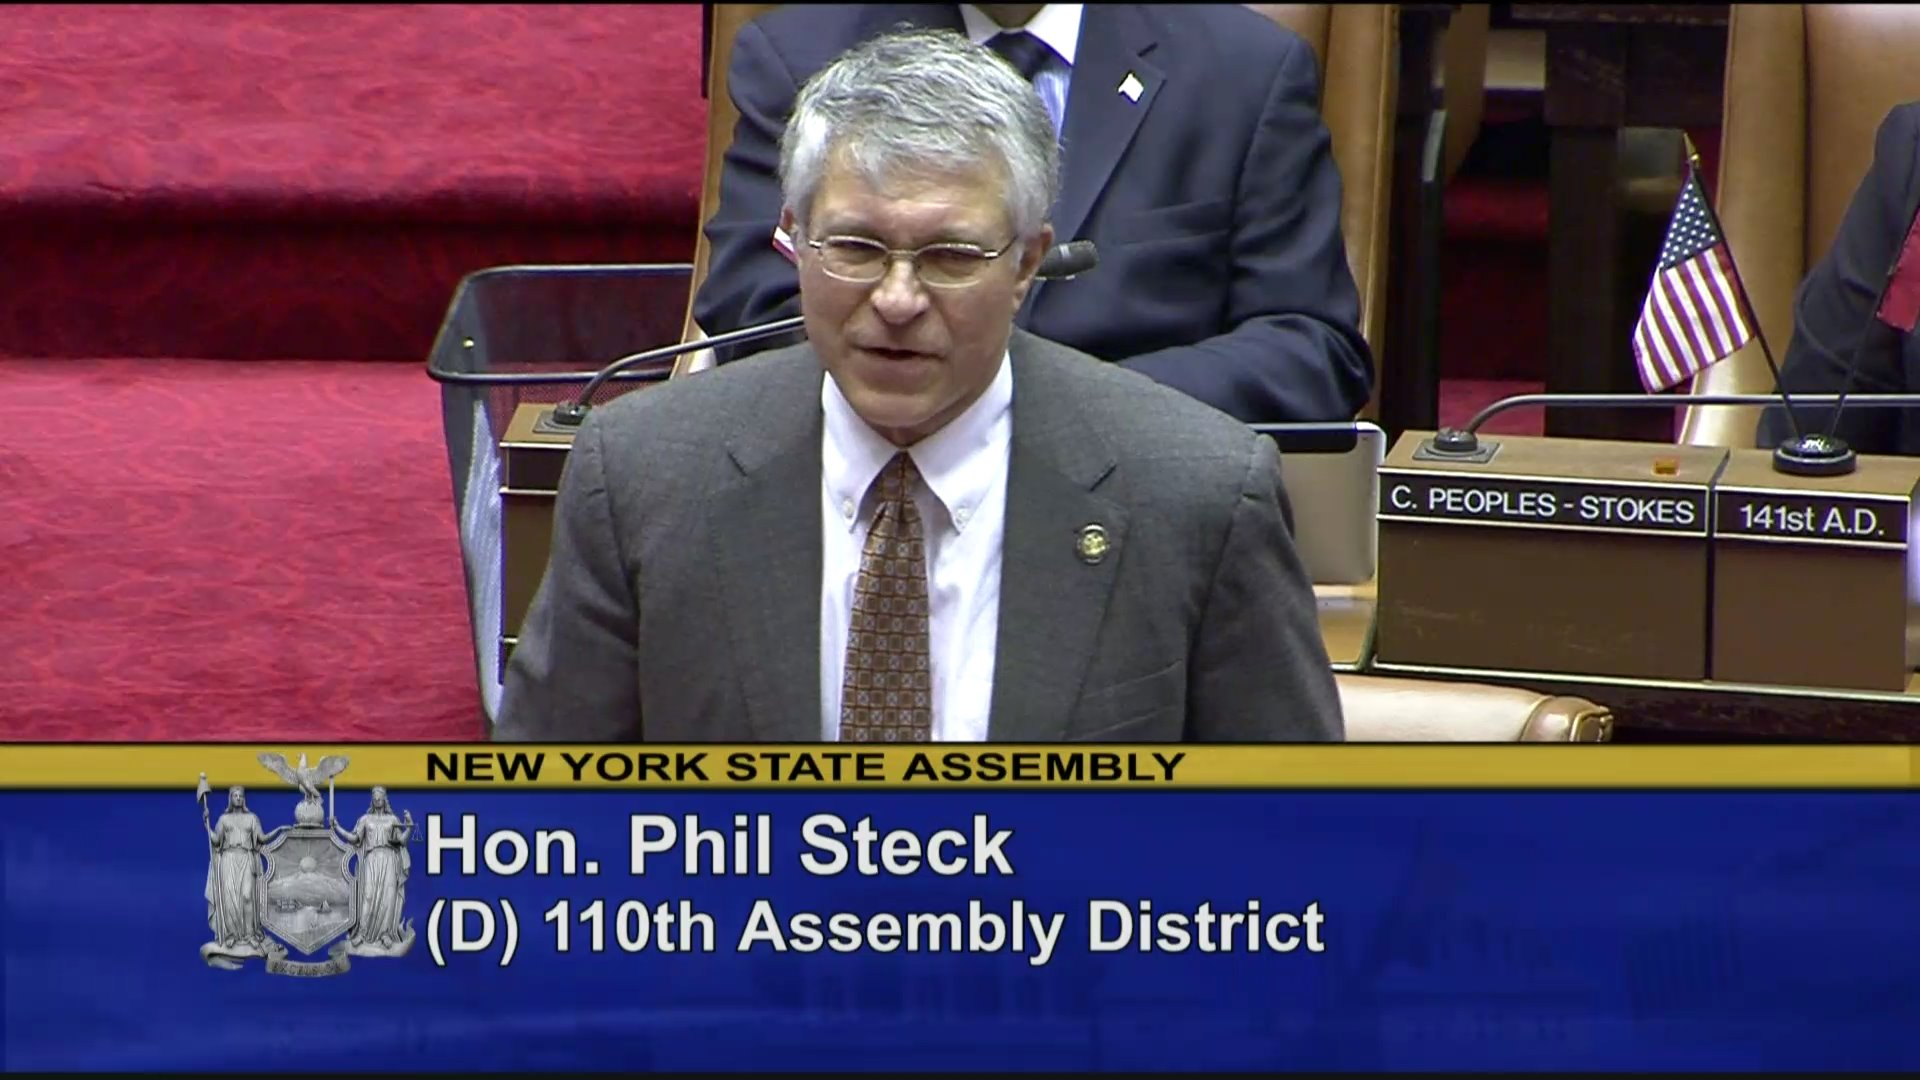 Steck Speaks on Authorization of Petroleum Gas Delivery in an Emergency